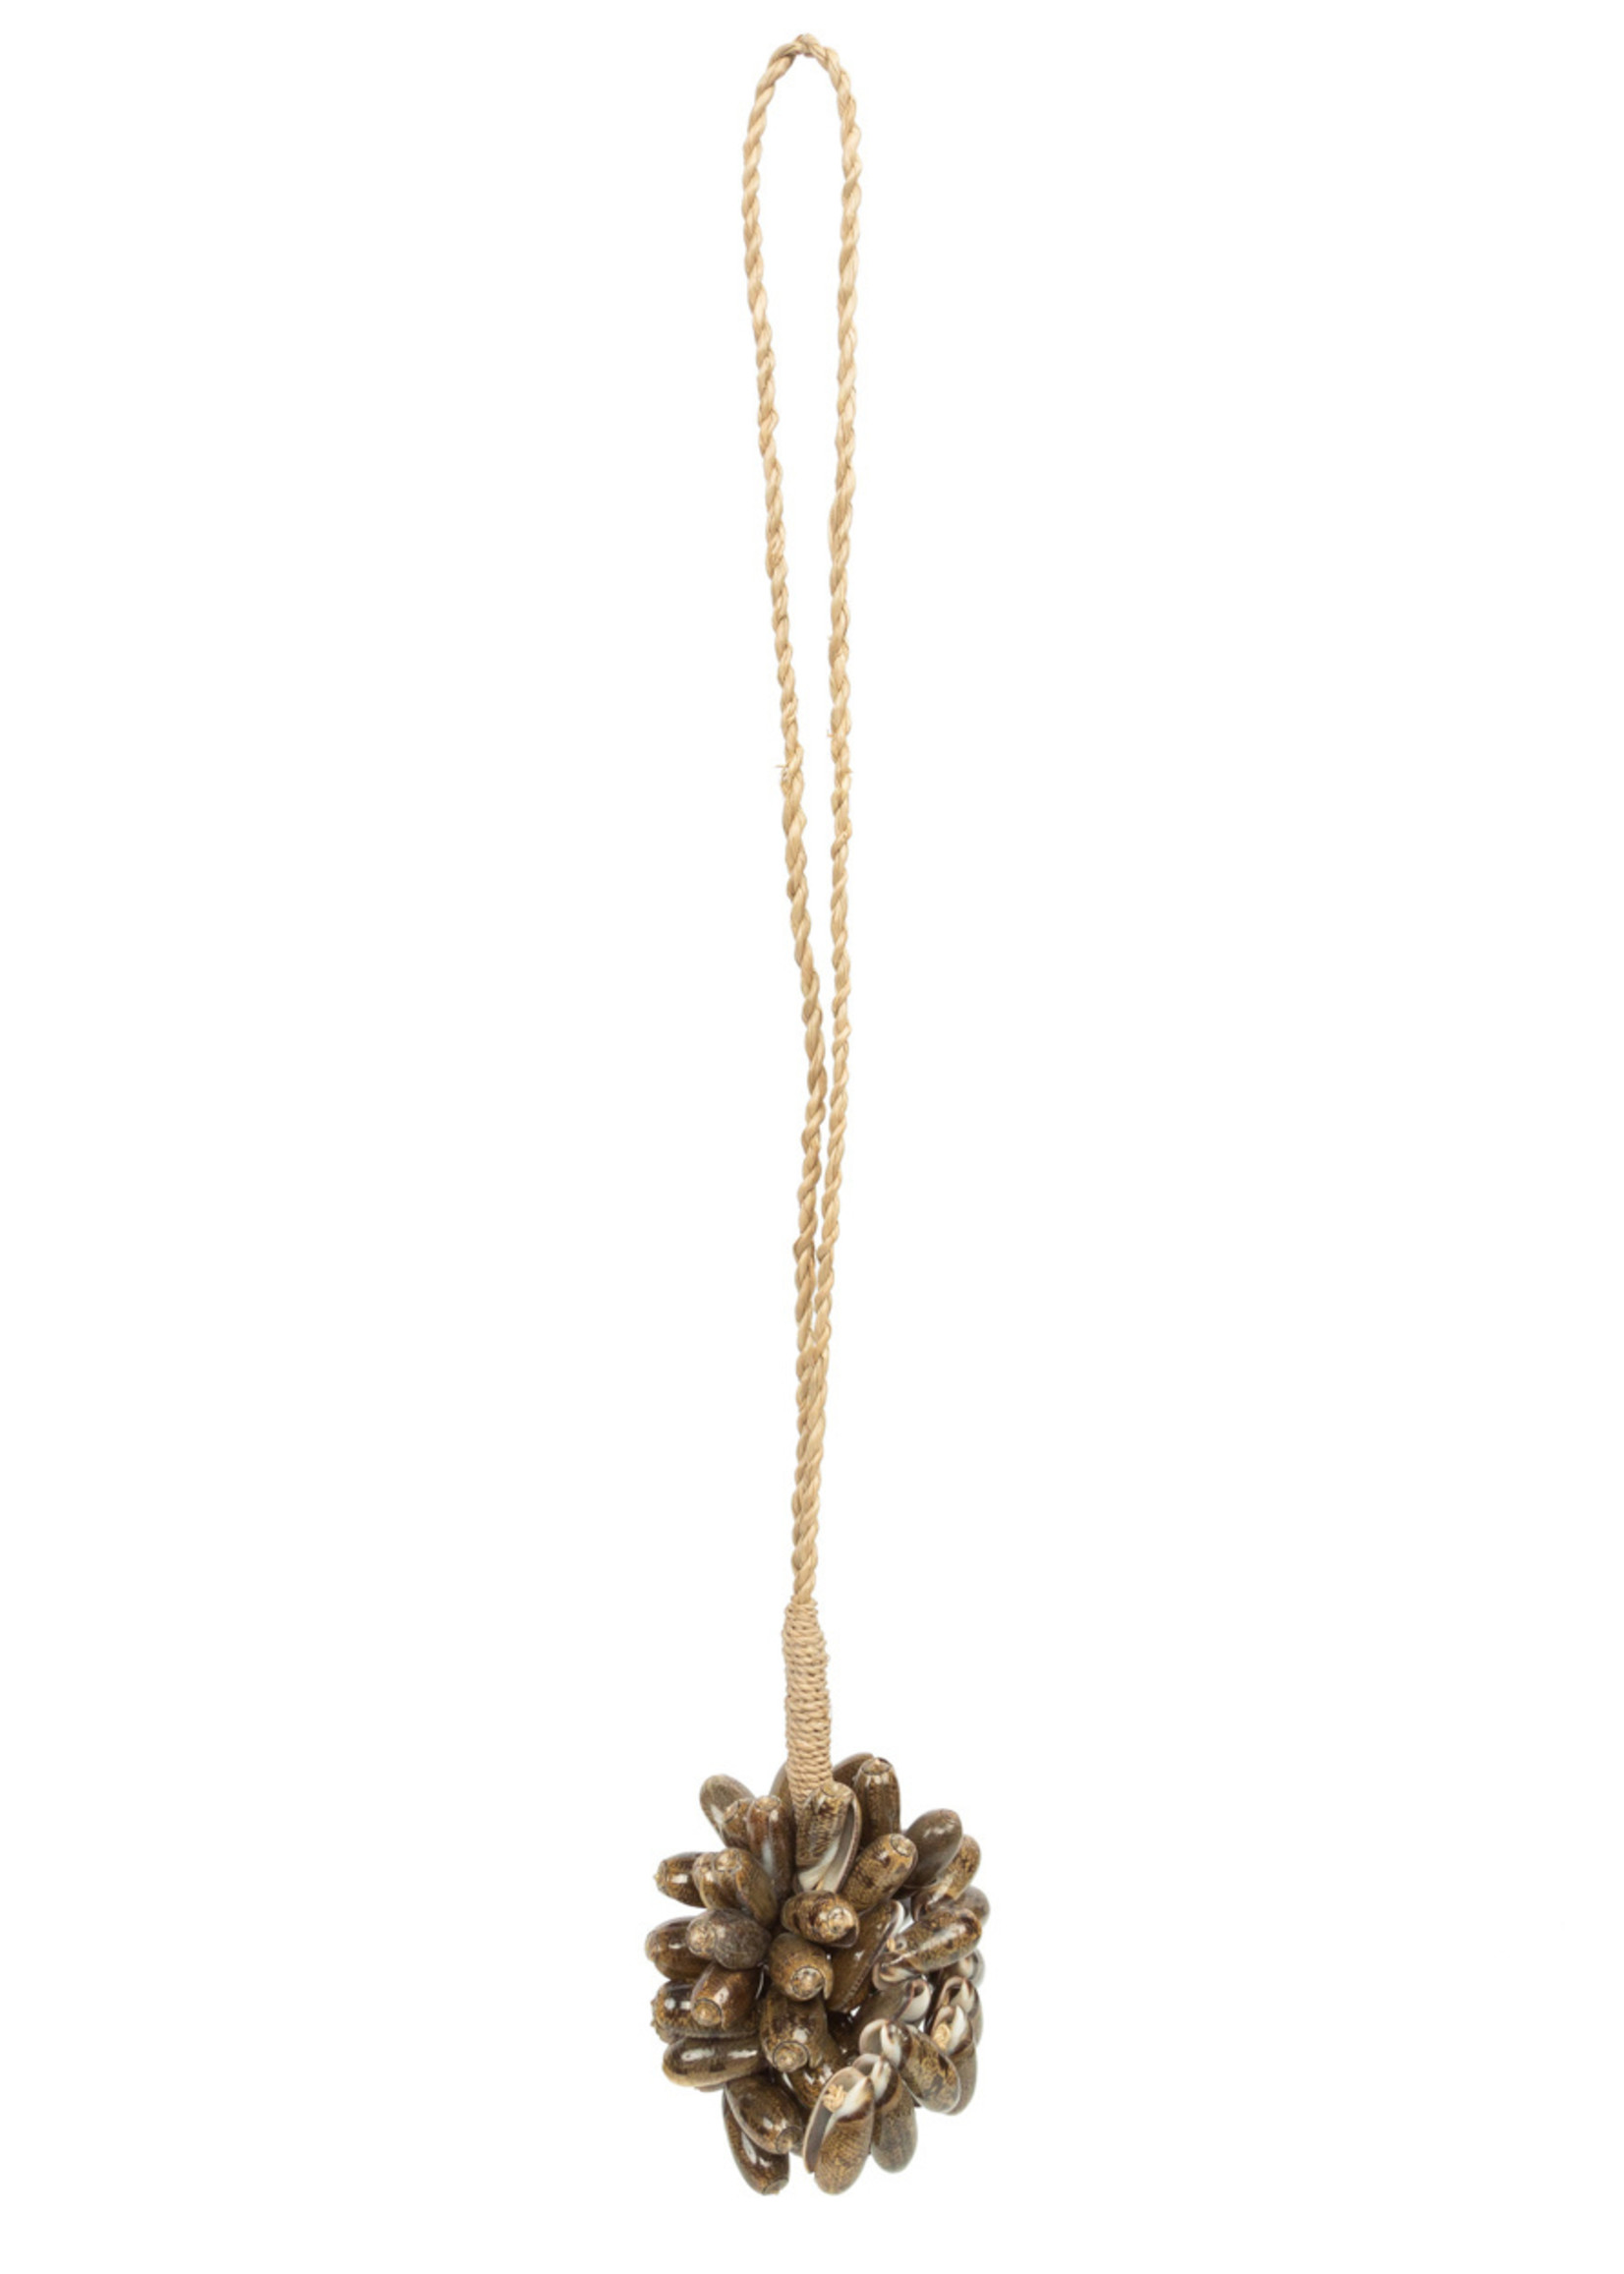 The Brown Cowrie Shell tassel